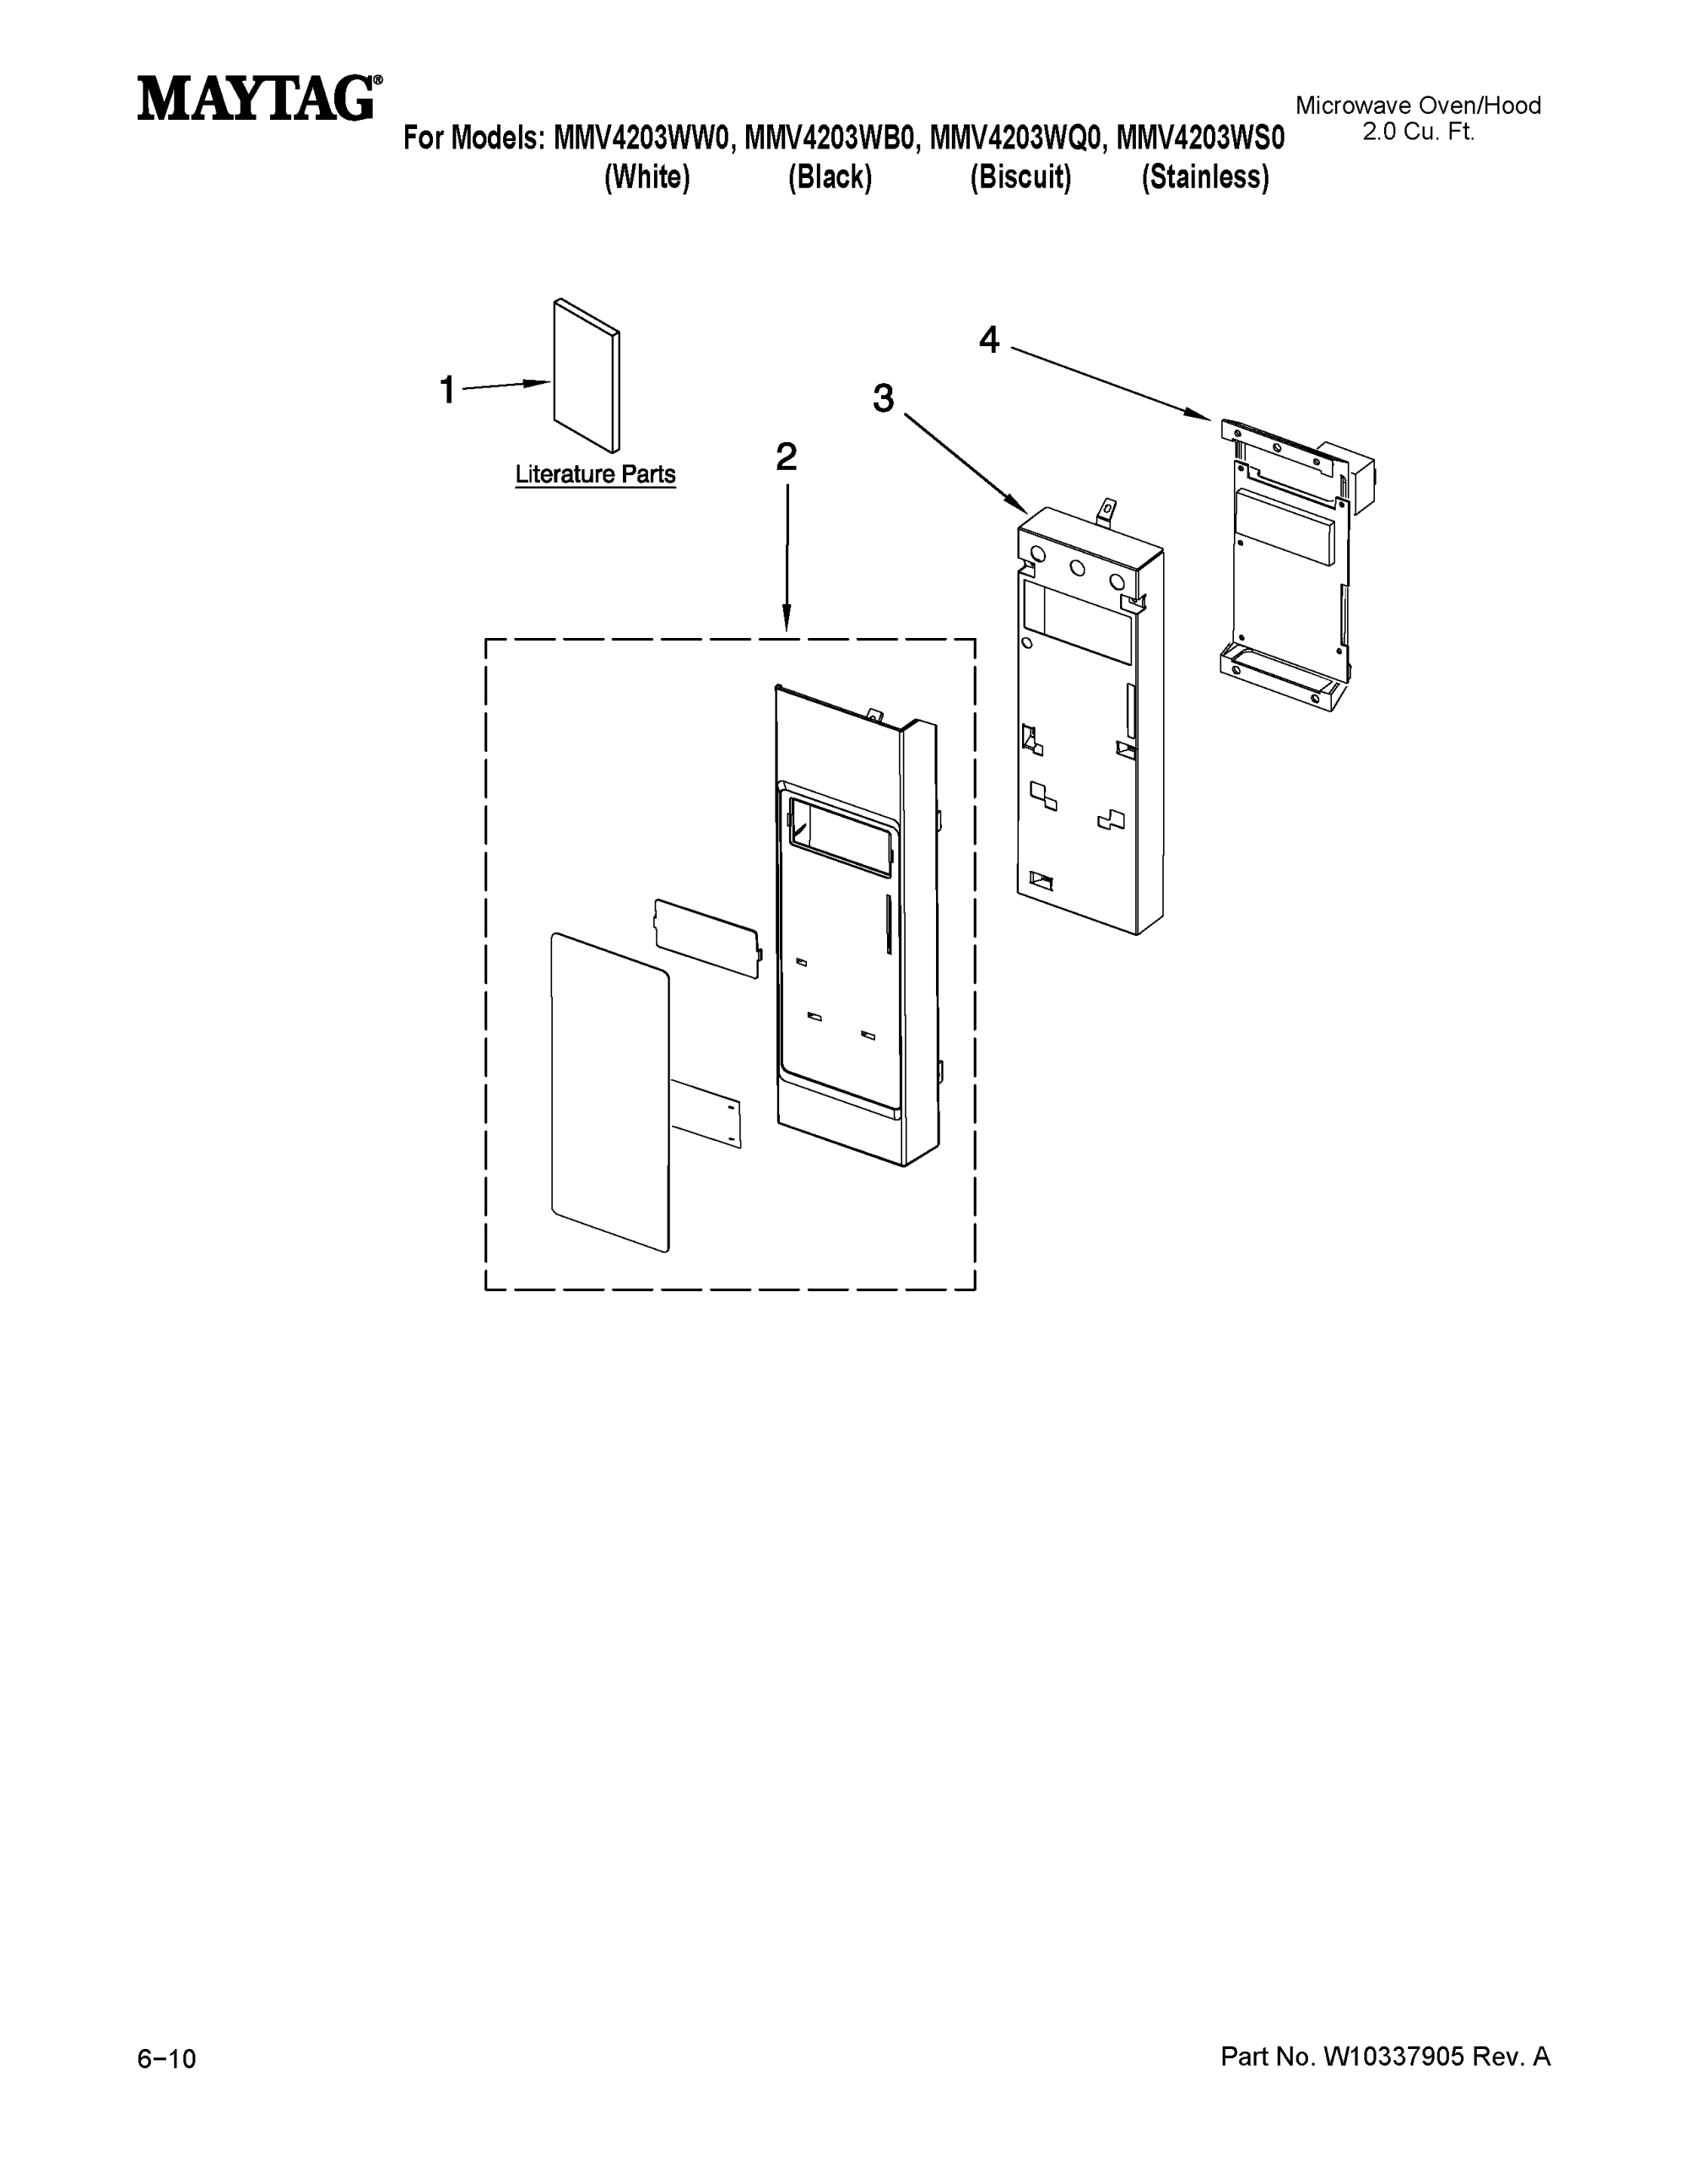 hight resolution of looking for maytag model mmv4203ws0 microwave hood combo repairmaytag mmv4203ws0 control panel parts diagram